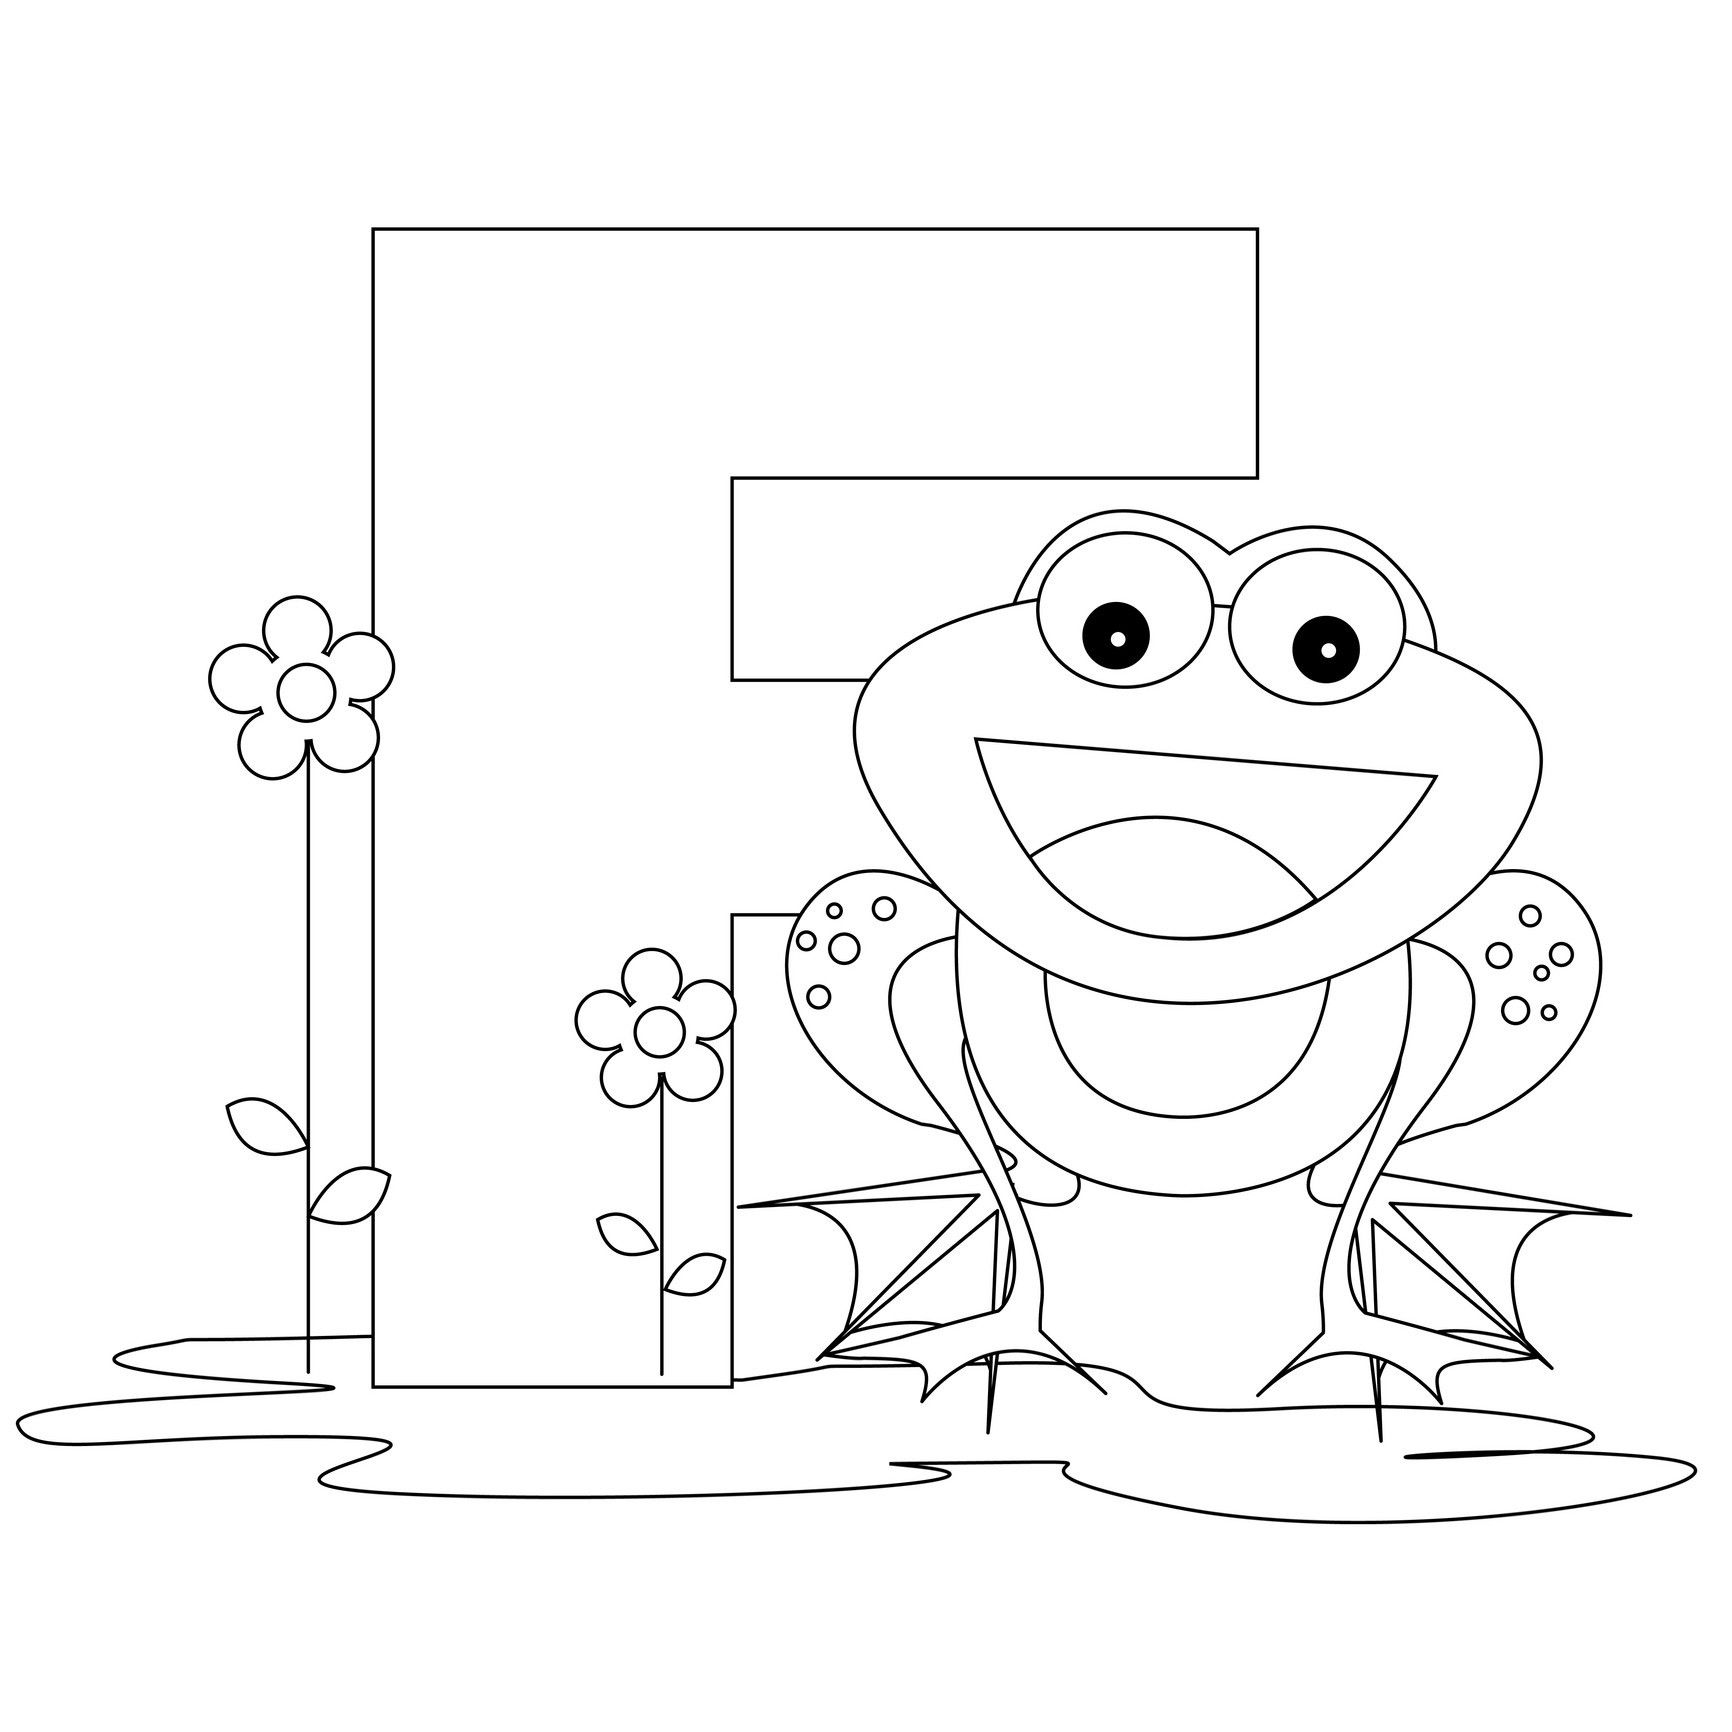 Letter F Worksheets In 2020 Alphabet Coloring Pages Abc Coloring Pages Lettering Alphabet